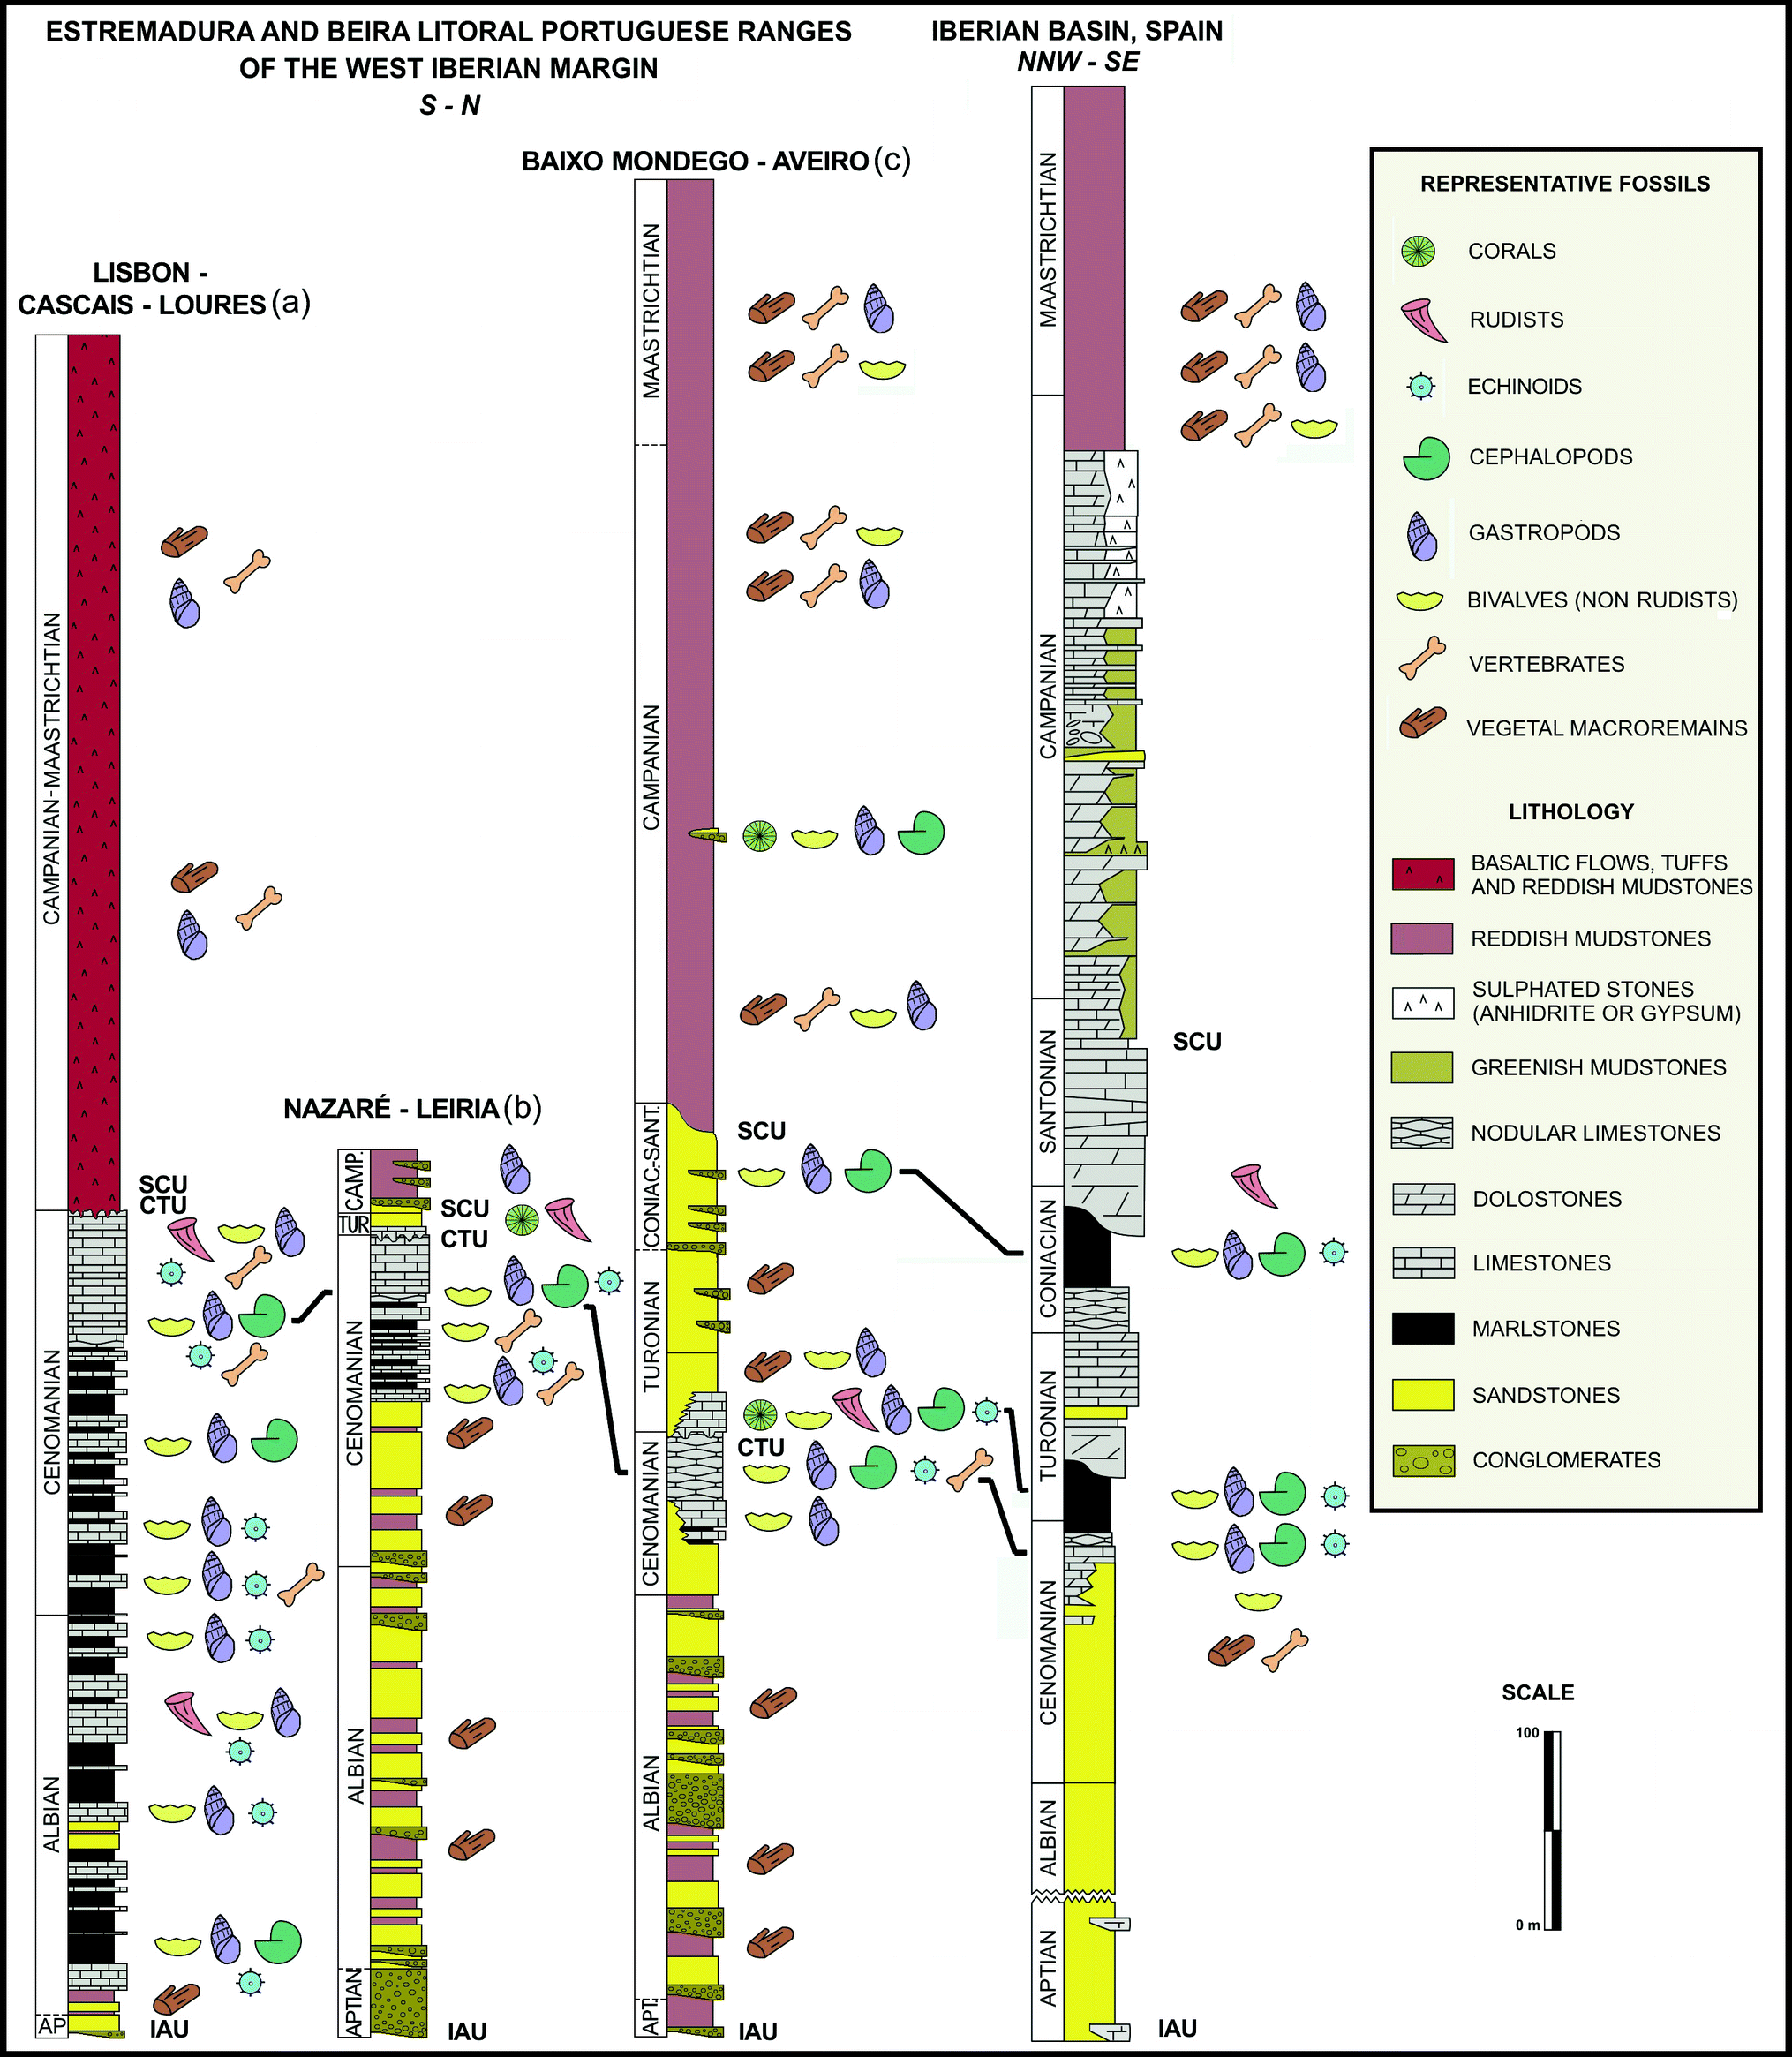 Late Cretaceous Post-Rift to Convergence in Iberia